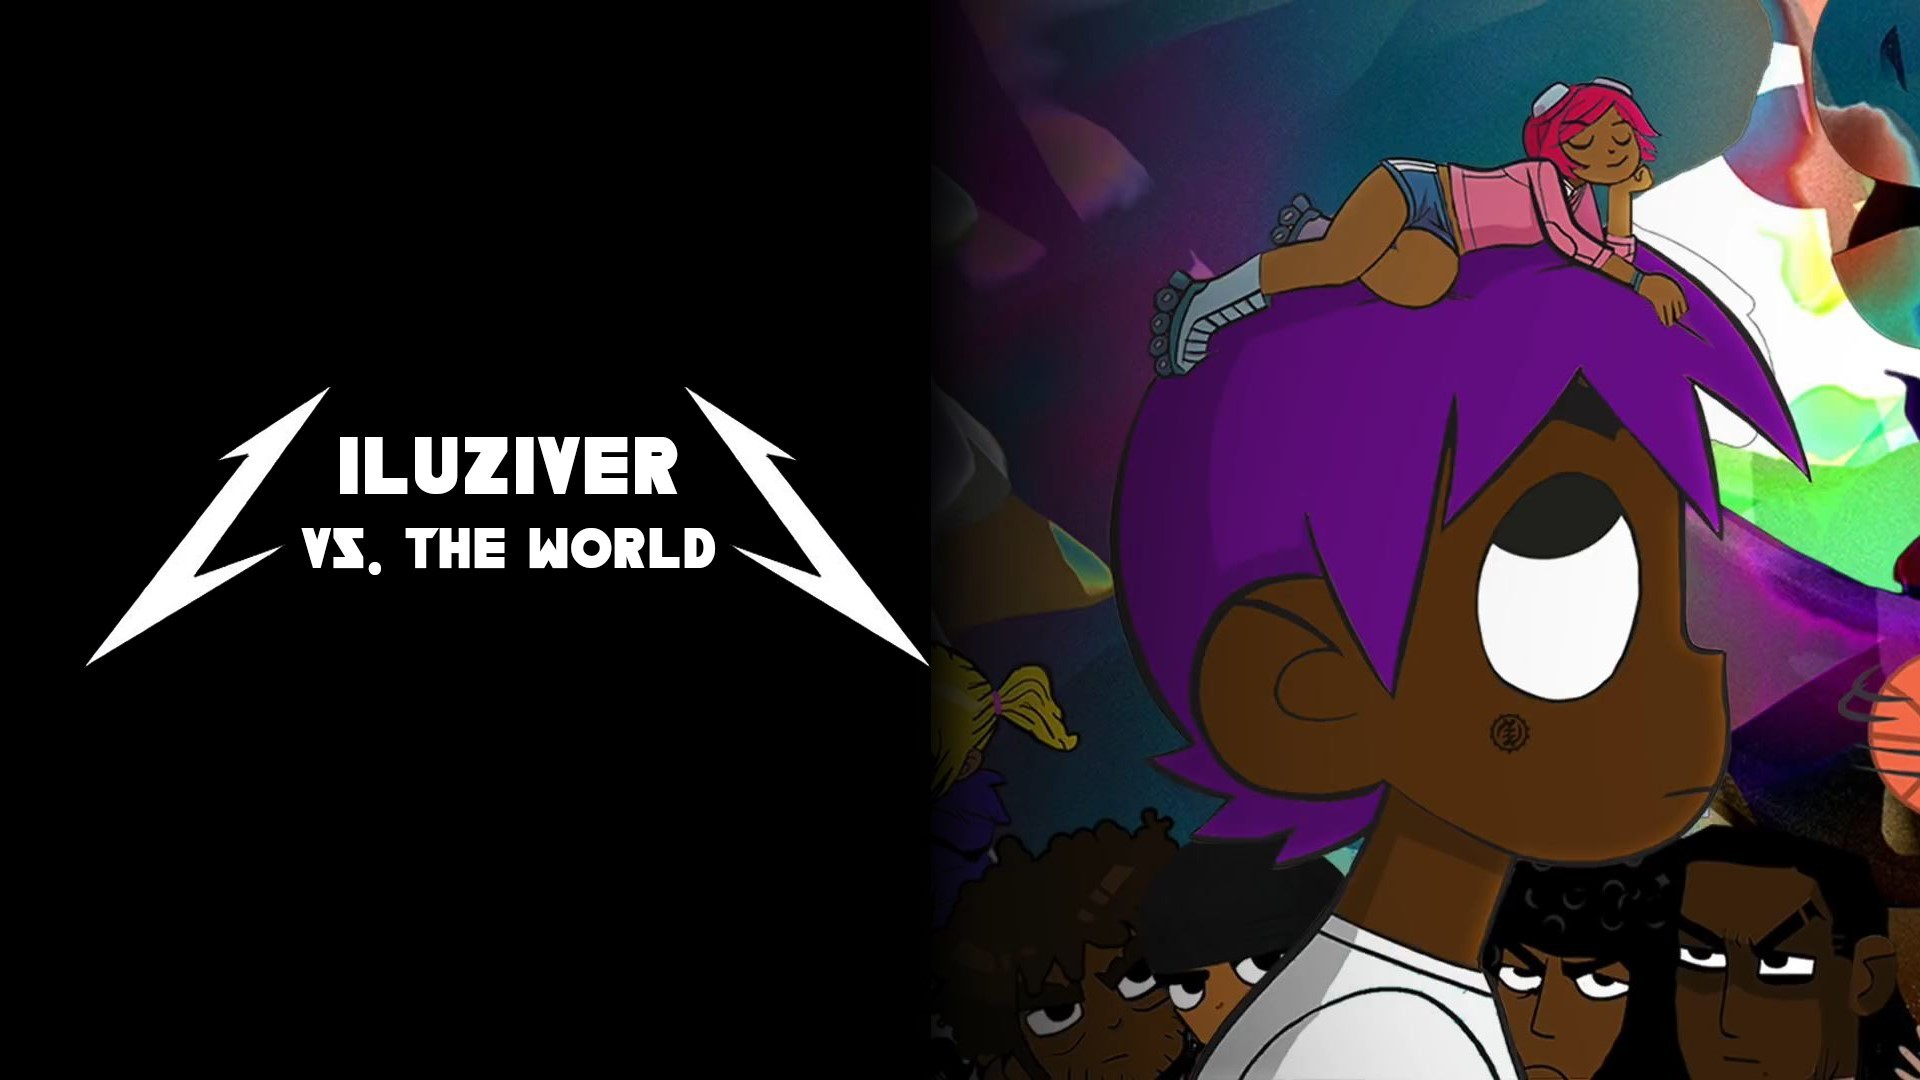 Lil Uzi Vert Vs The World Hd Wallpaper Kolpaper Awesome Free Hd Wallpapers Join now to share and explore tons of collections of awesome wallpapers. lil uzi vert vs the world hd wallpaper